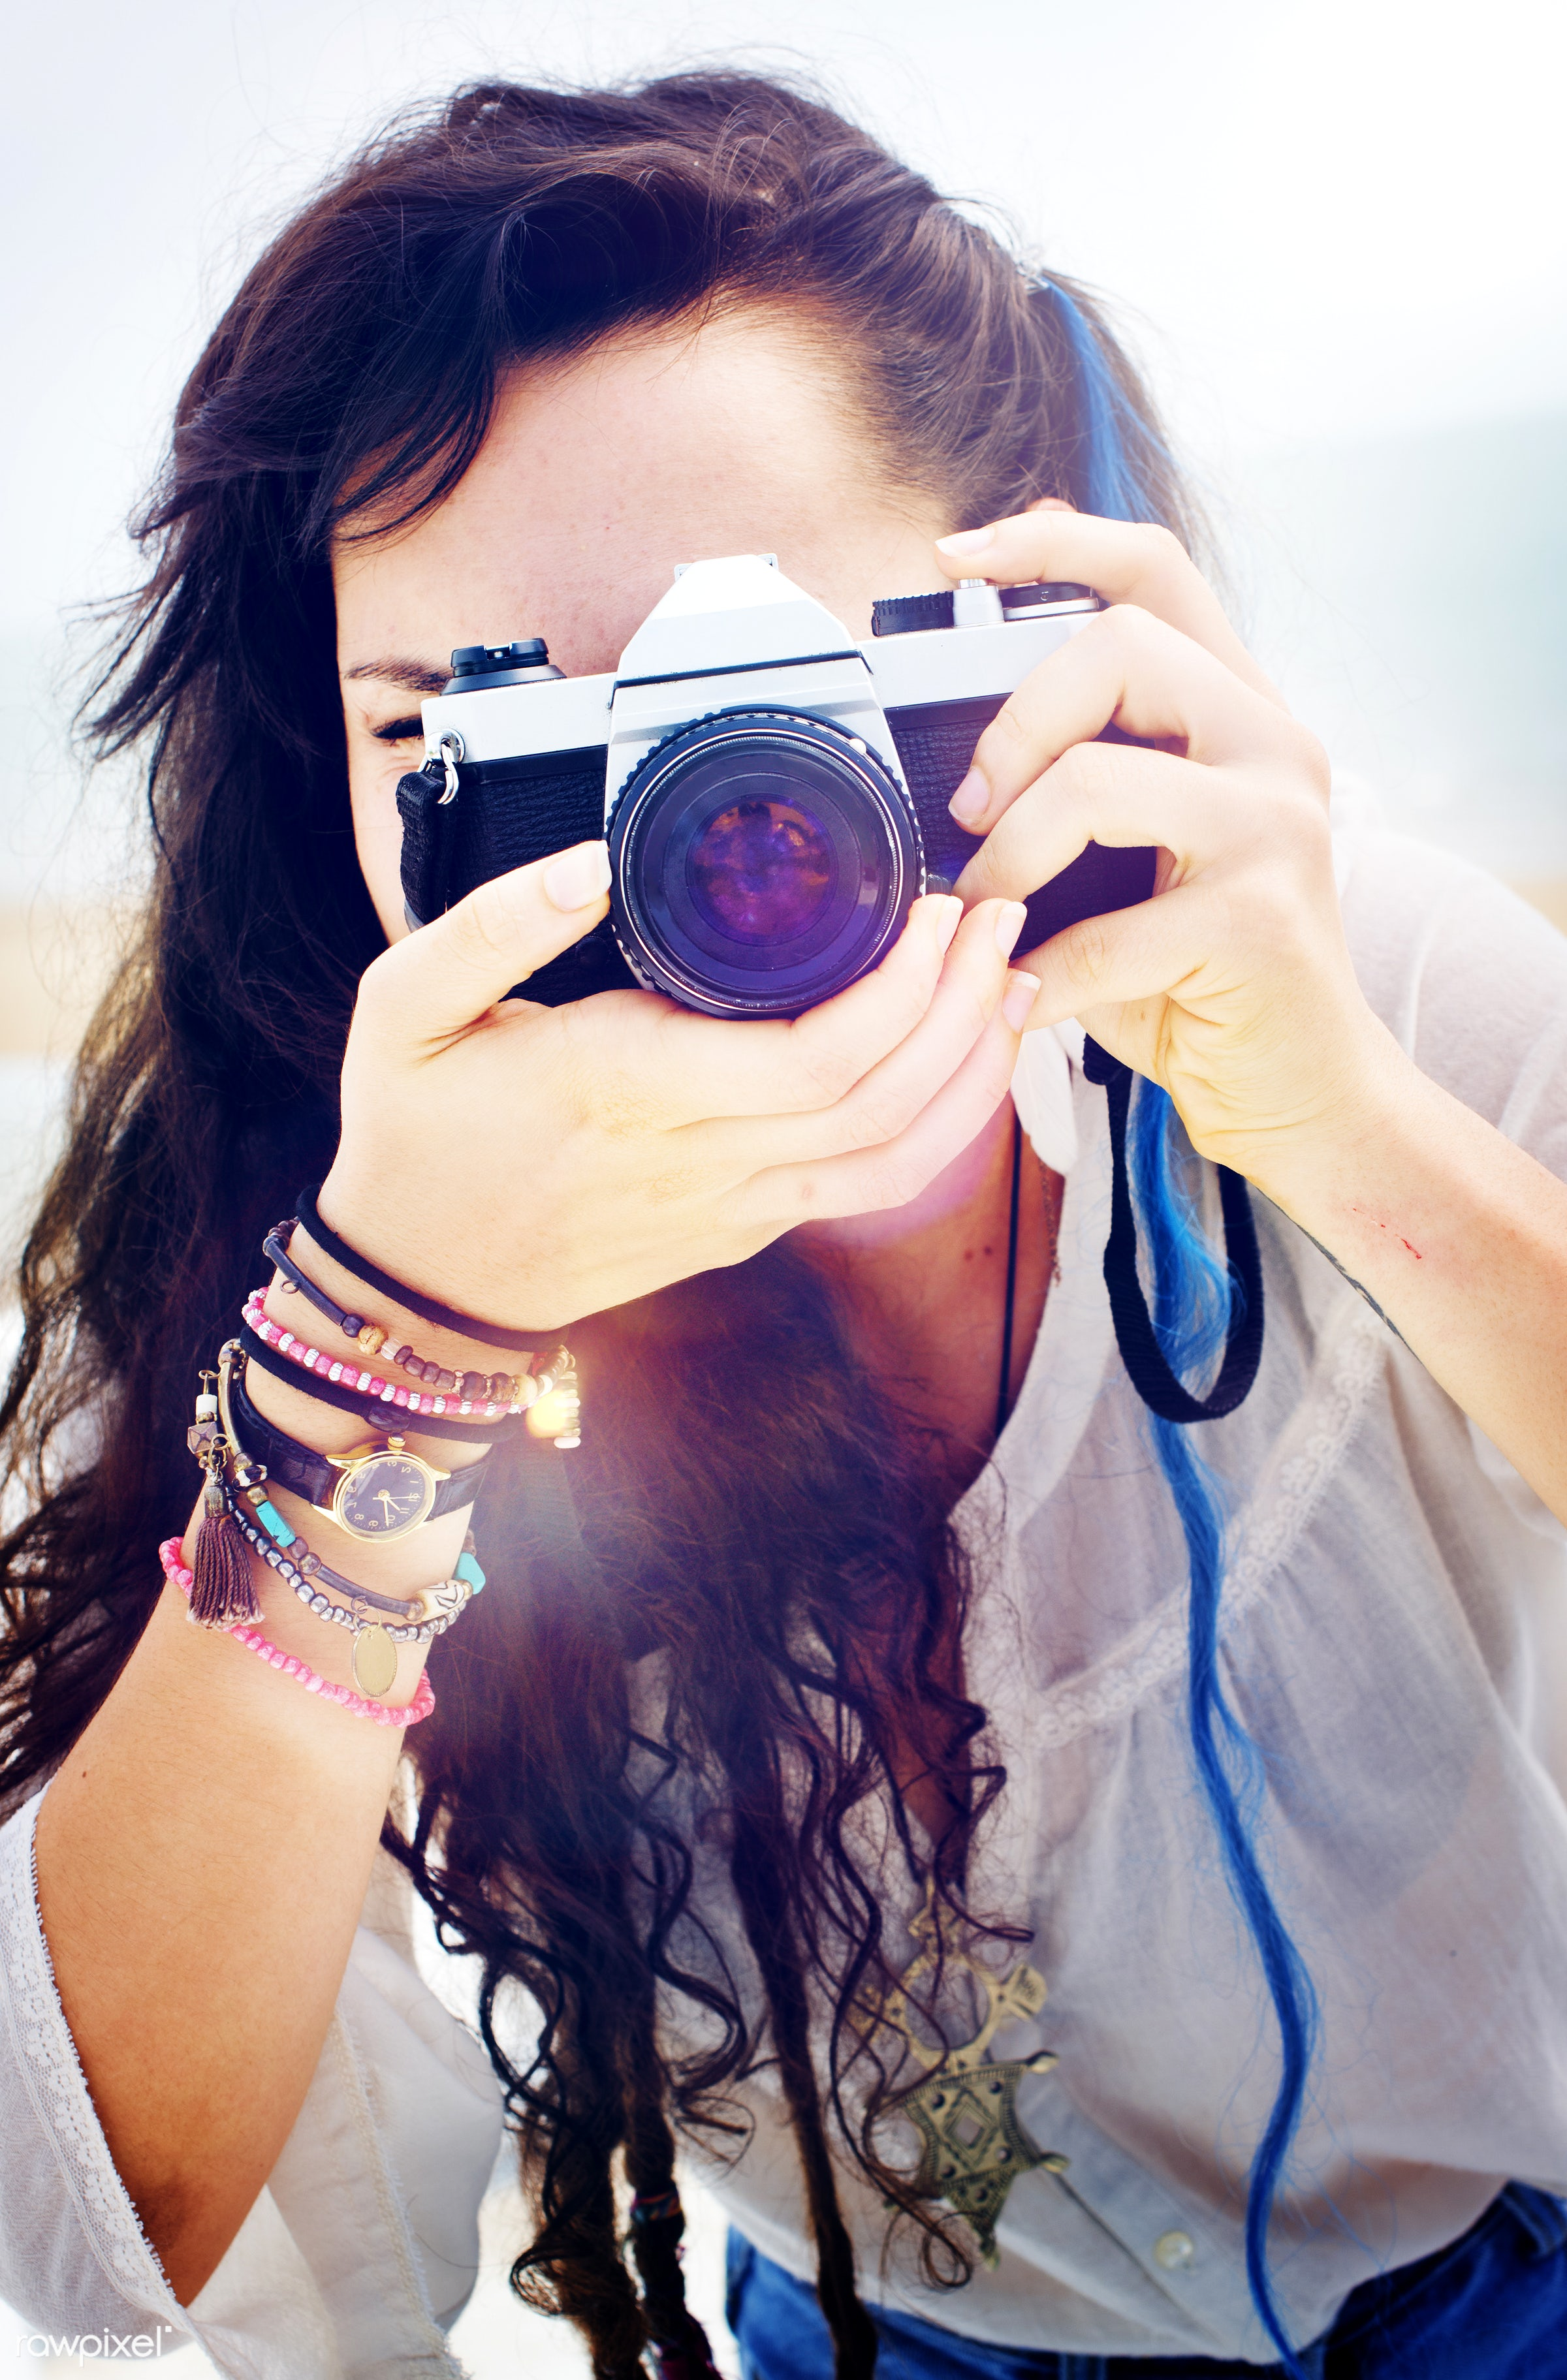 art, attractive, beach, beautiful, camera, casual, caucasian, cheerful, closeup, color, colorful, cool, enjoying, enjoyment...